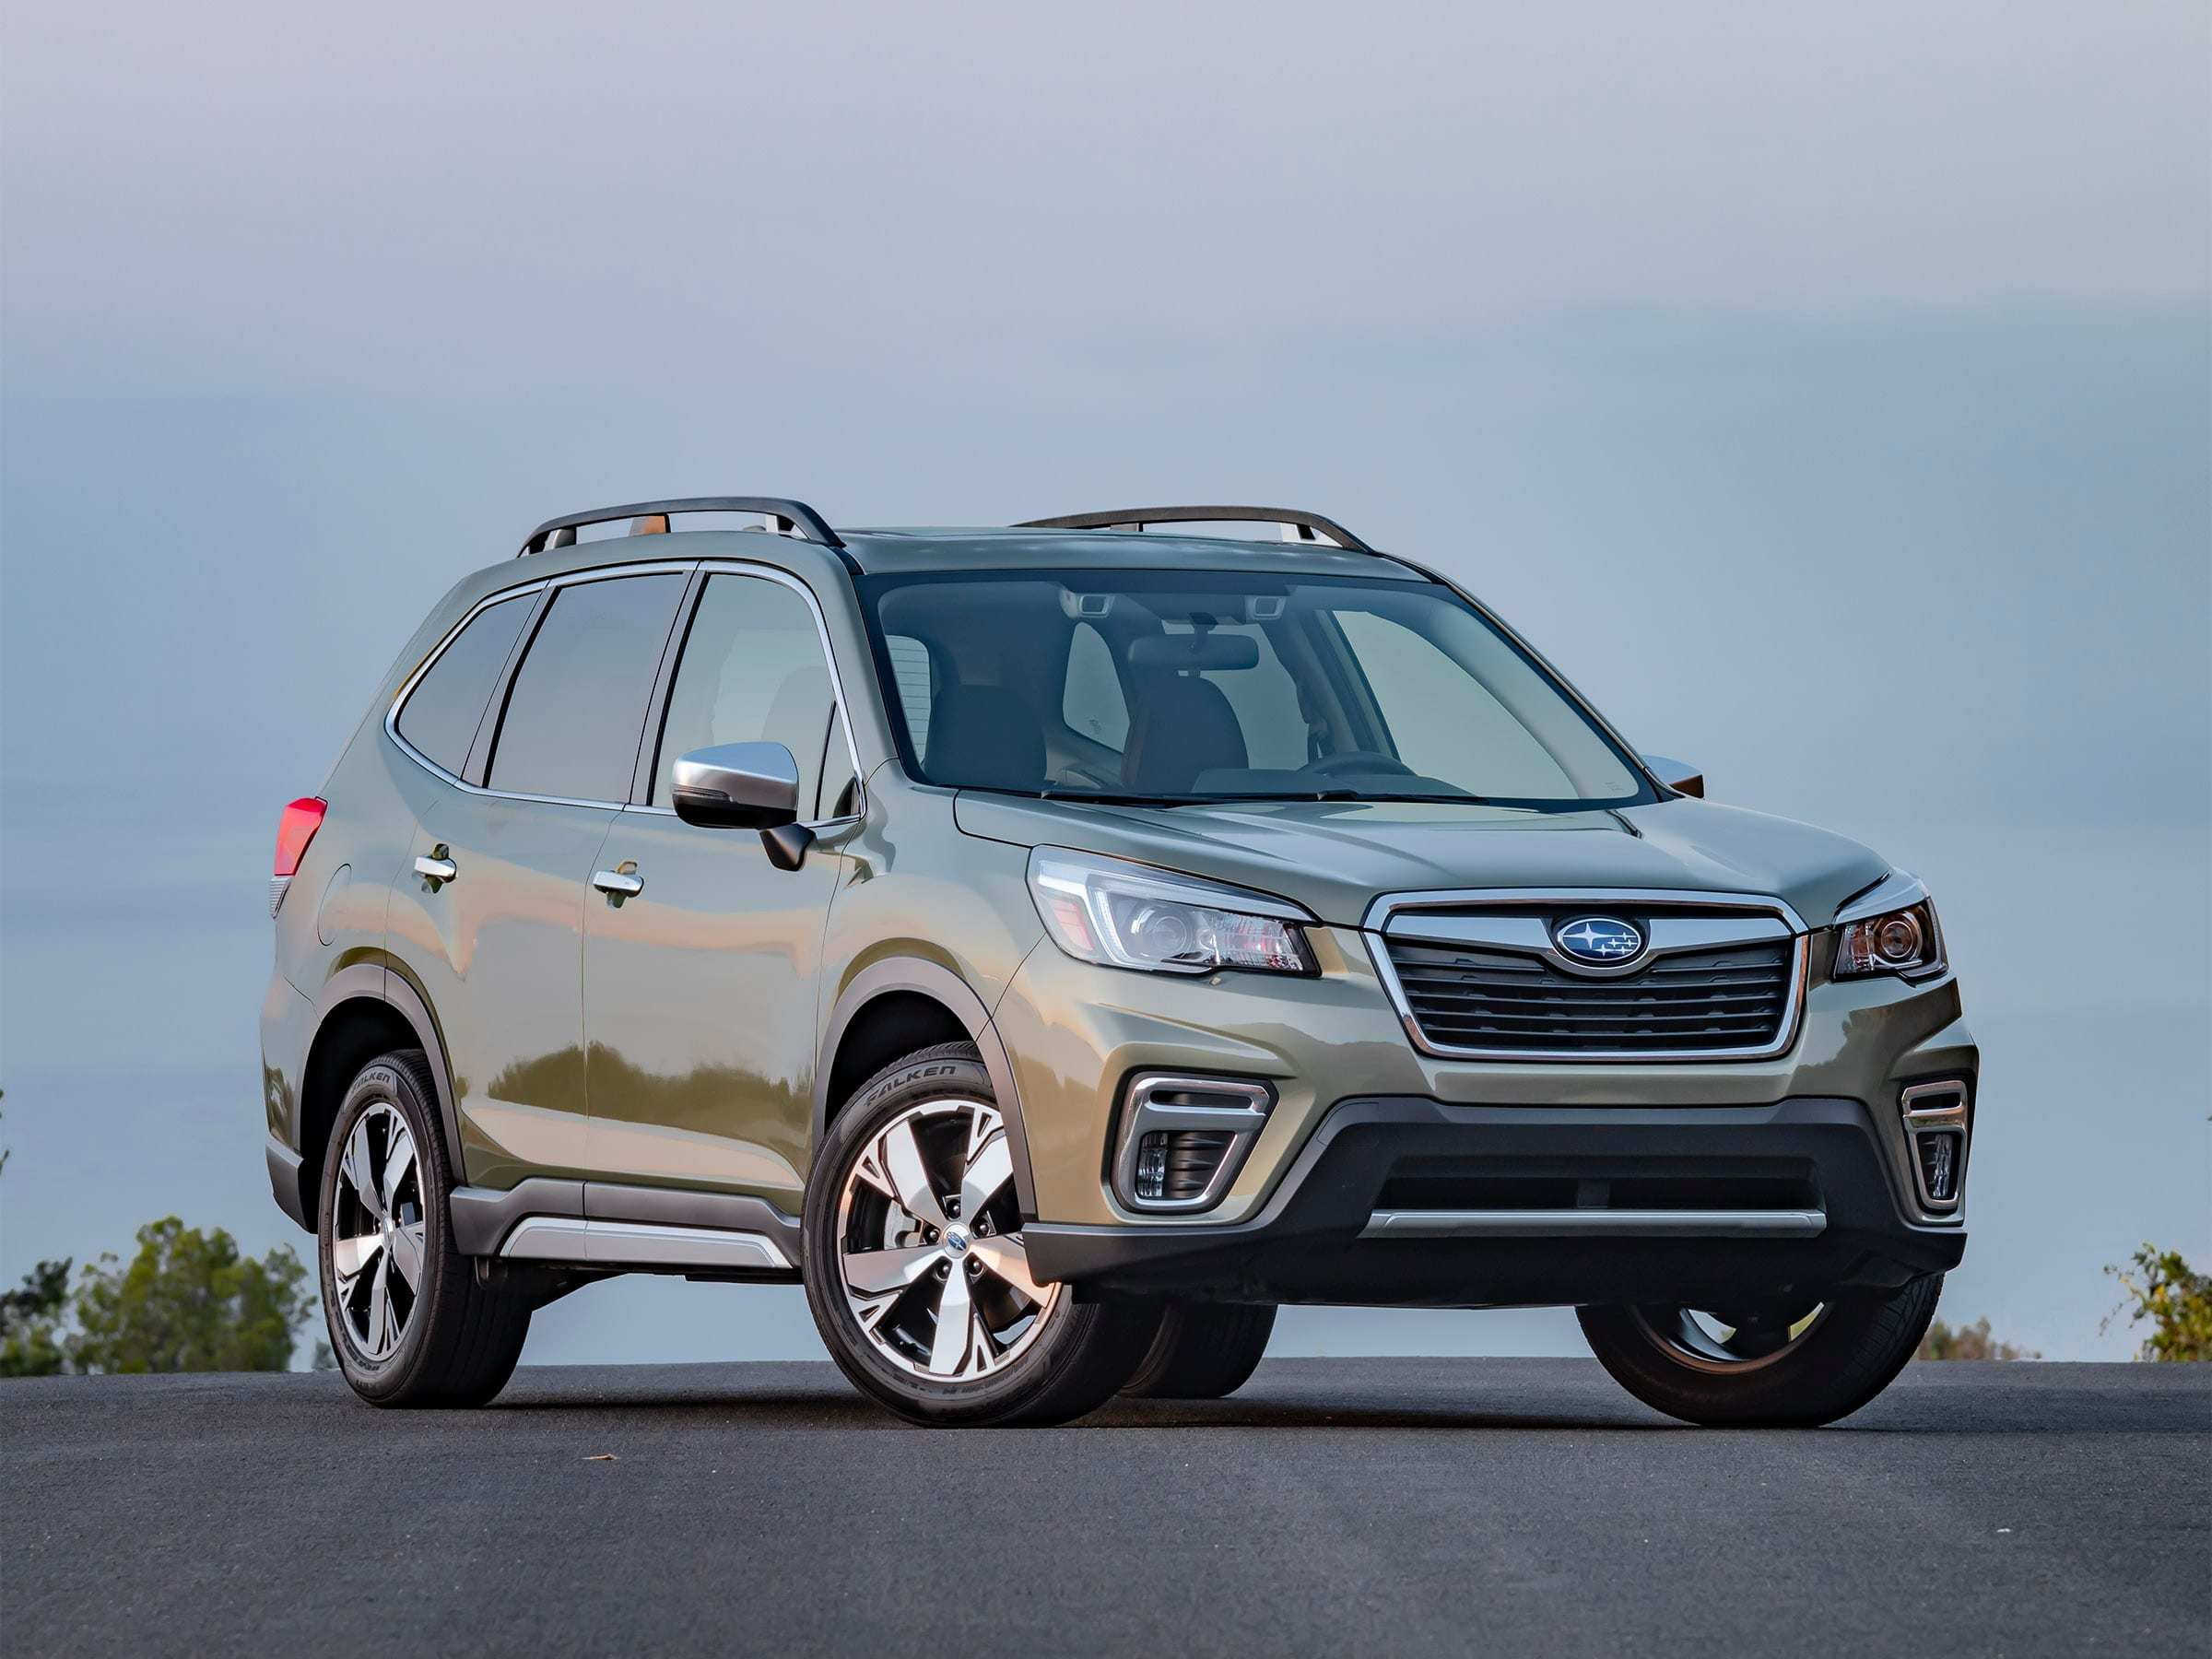 33 New 2019 Subaru Forester Concept by 2019 Subaru Forester